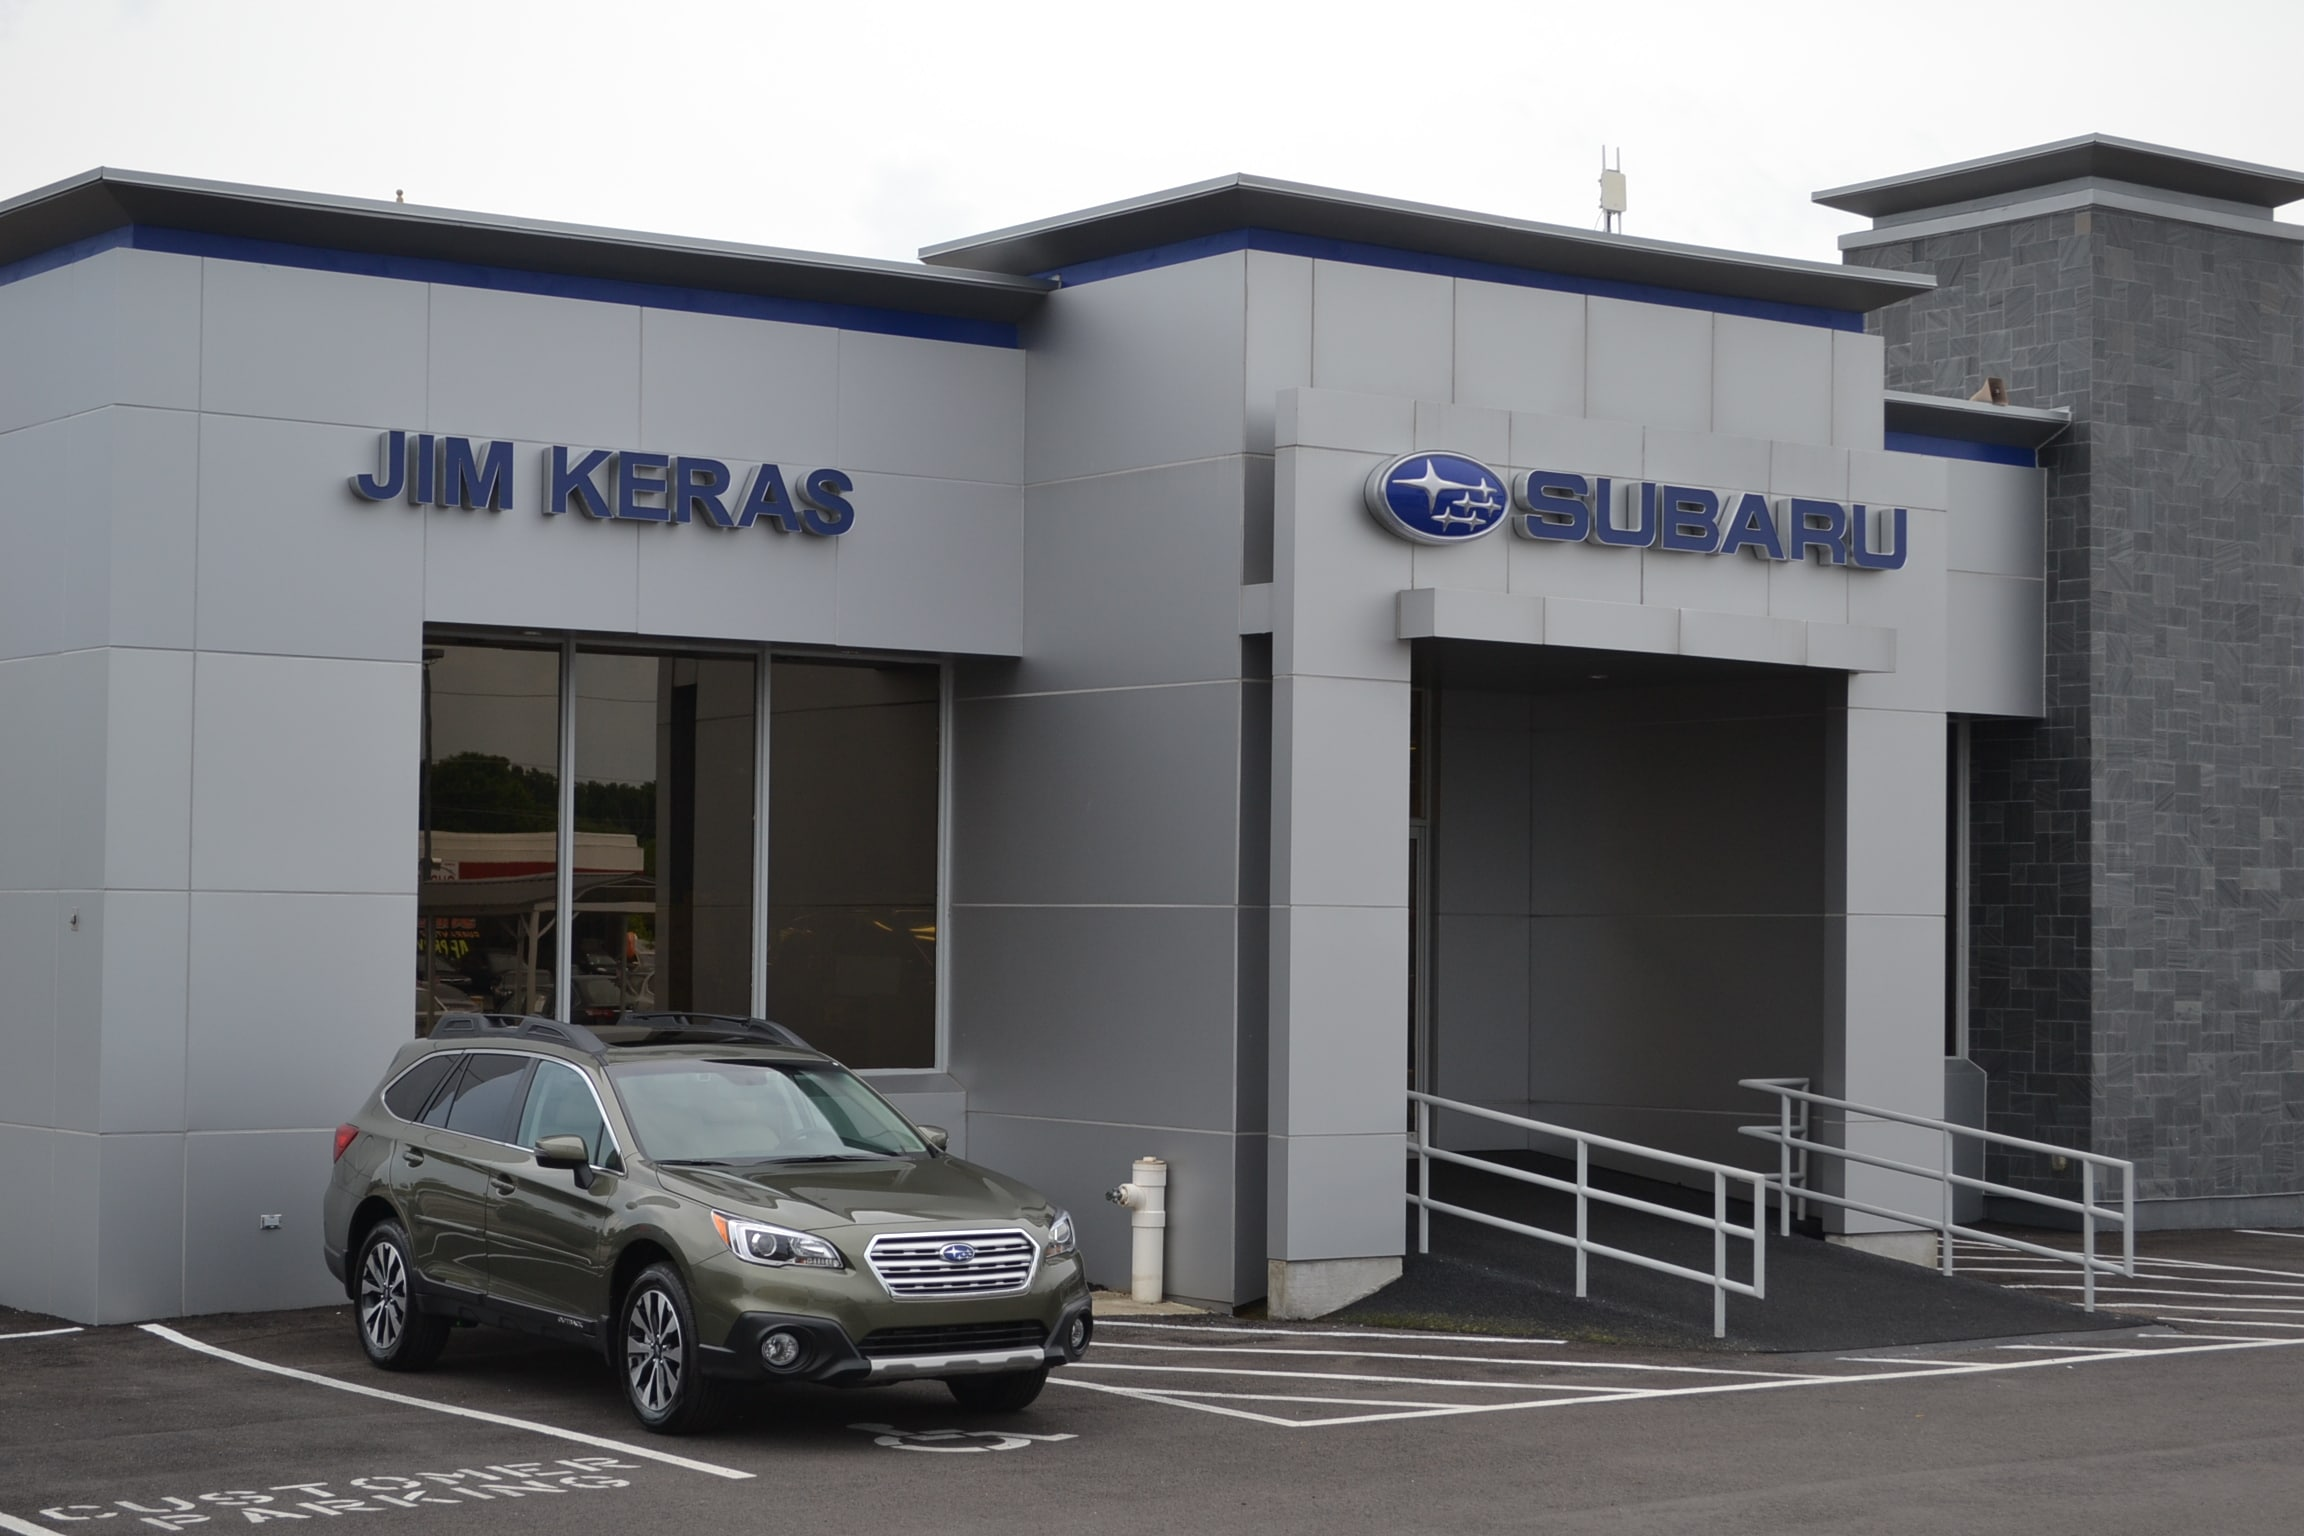 directions to jim keras subaru dealership in memphis near bartlett. Black Bedroom Furniture Sets. Home Design Ideas